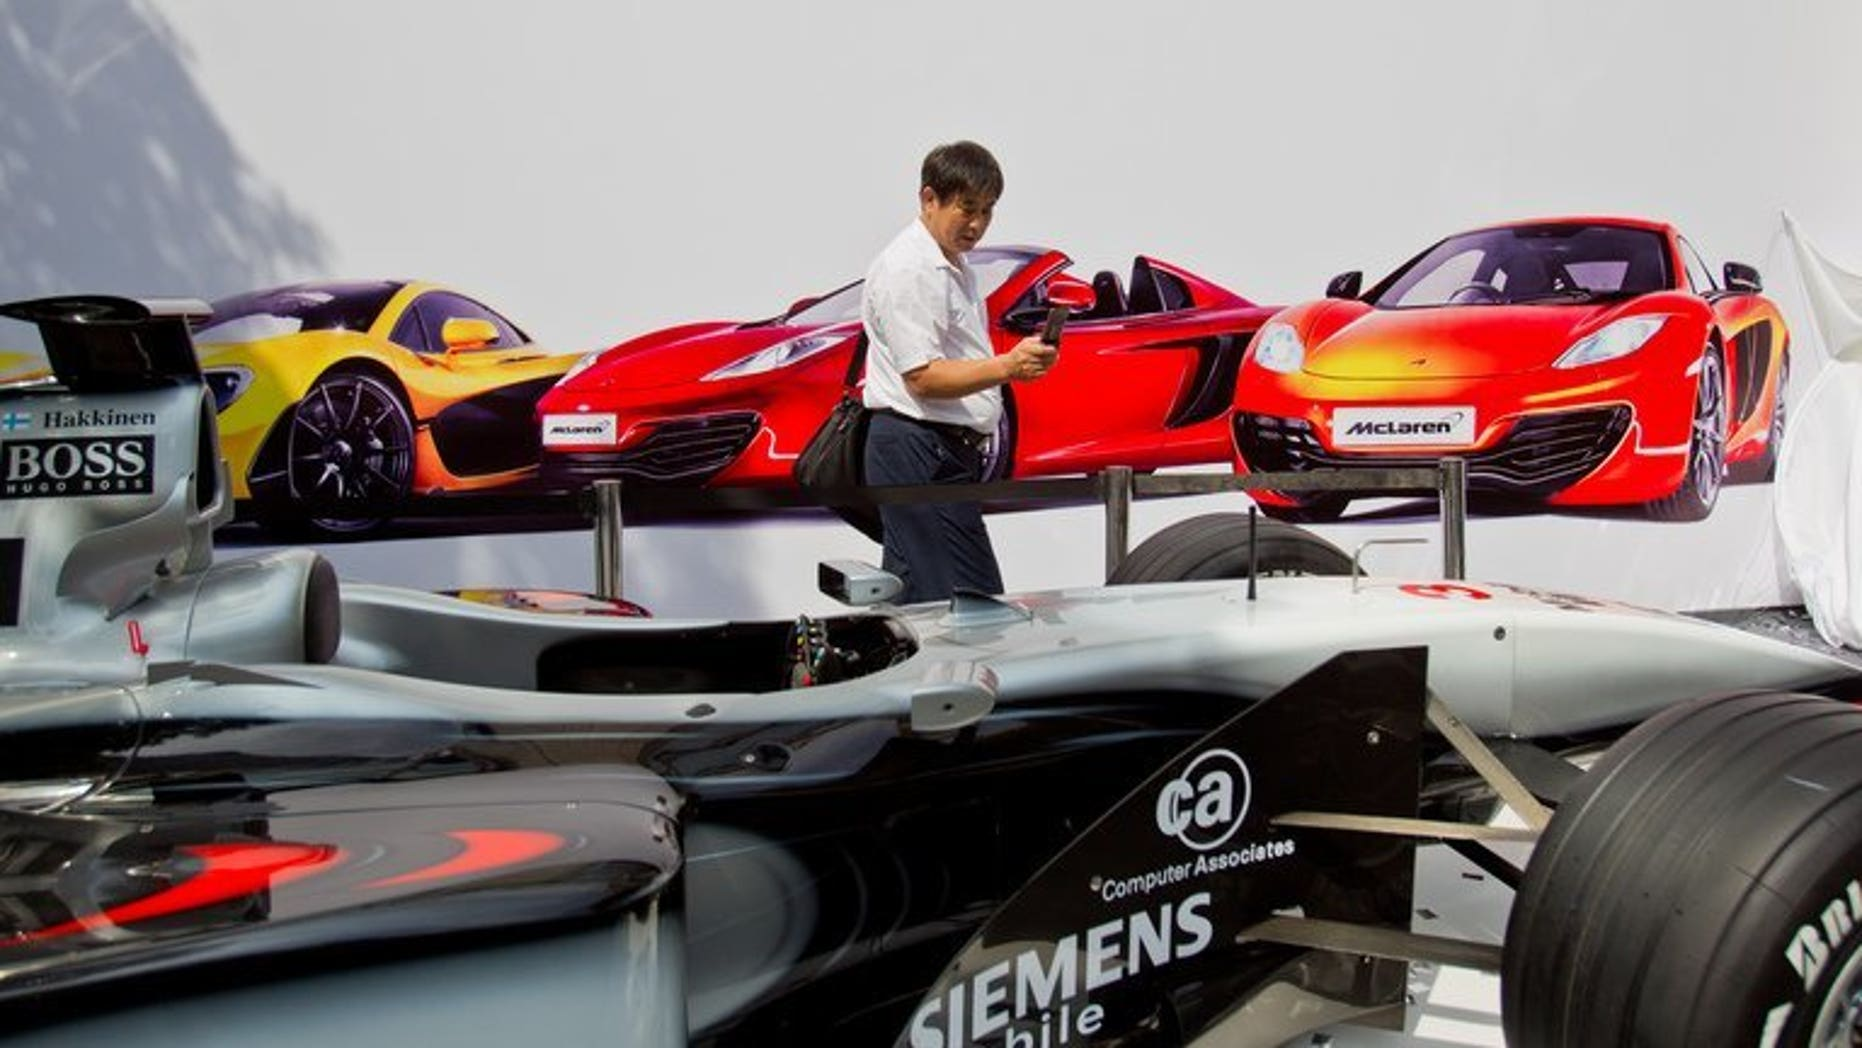 Mclaren Automotive's first Chinese dealership opens in Shanghai on Thursday. Britain's McLaren opened its first car dealership in mainland China, hoping to sell the country's wealthy elite its Formula One-inspired vehicles for up to $2.1 million apiece.